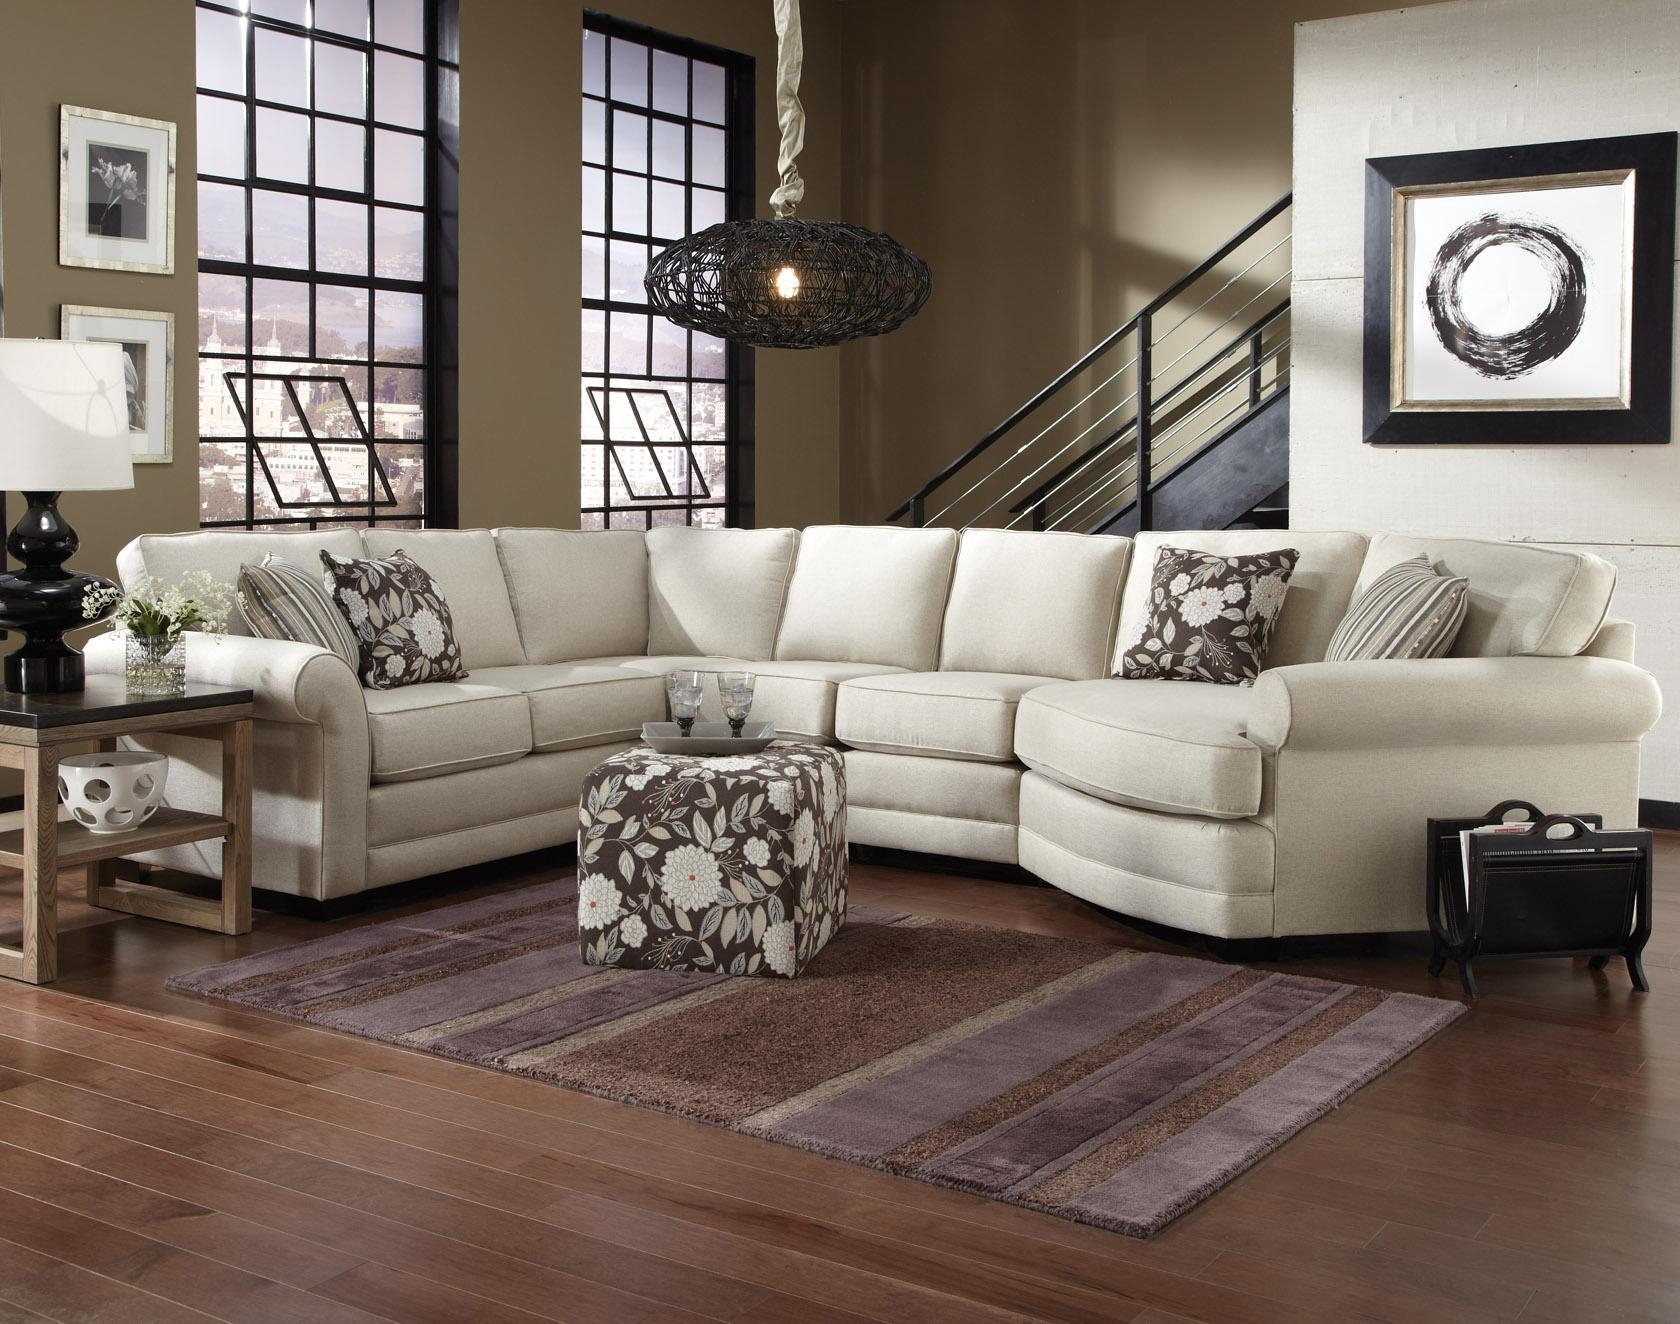 England Brantley 5 Seat Sectional Sofa With Cuddler – Dunk Throughout Wide Seat Sectional Sofas (Image 7 of 20)